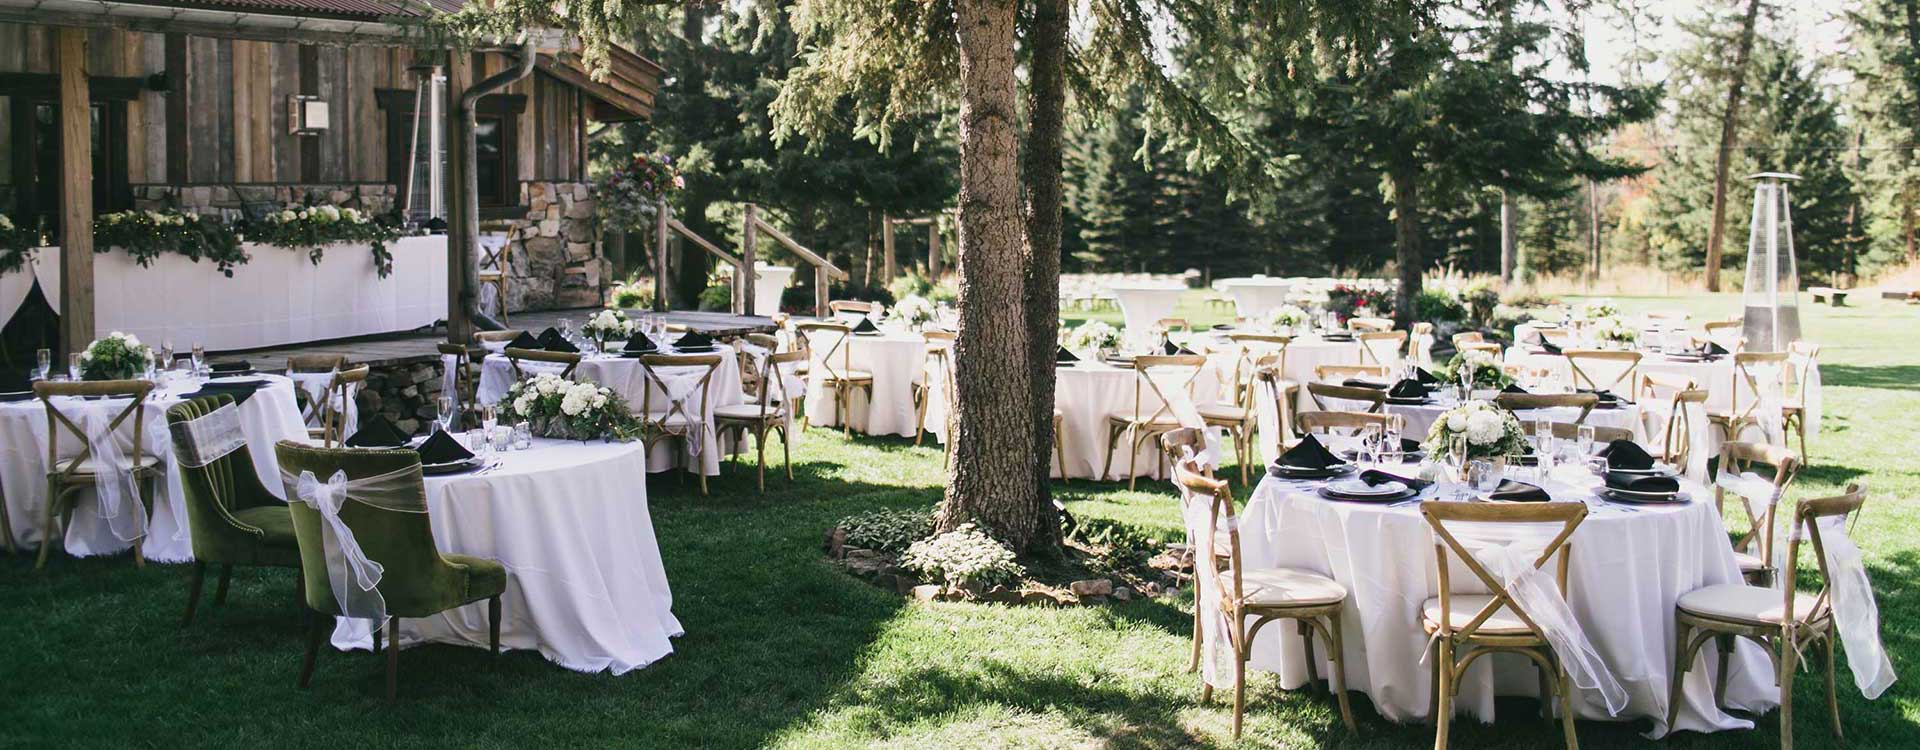 Special Event Rentals in Whitefish Montana, Kalispell, Columbia Falls, Bigfork, West Glacier, Glacier National Park, Eureka, Lakeside, Polson, Missoula MT